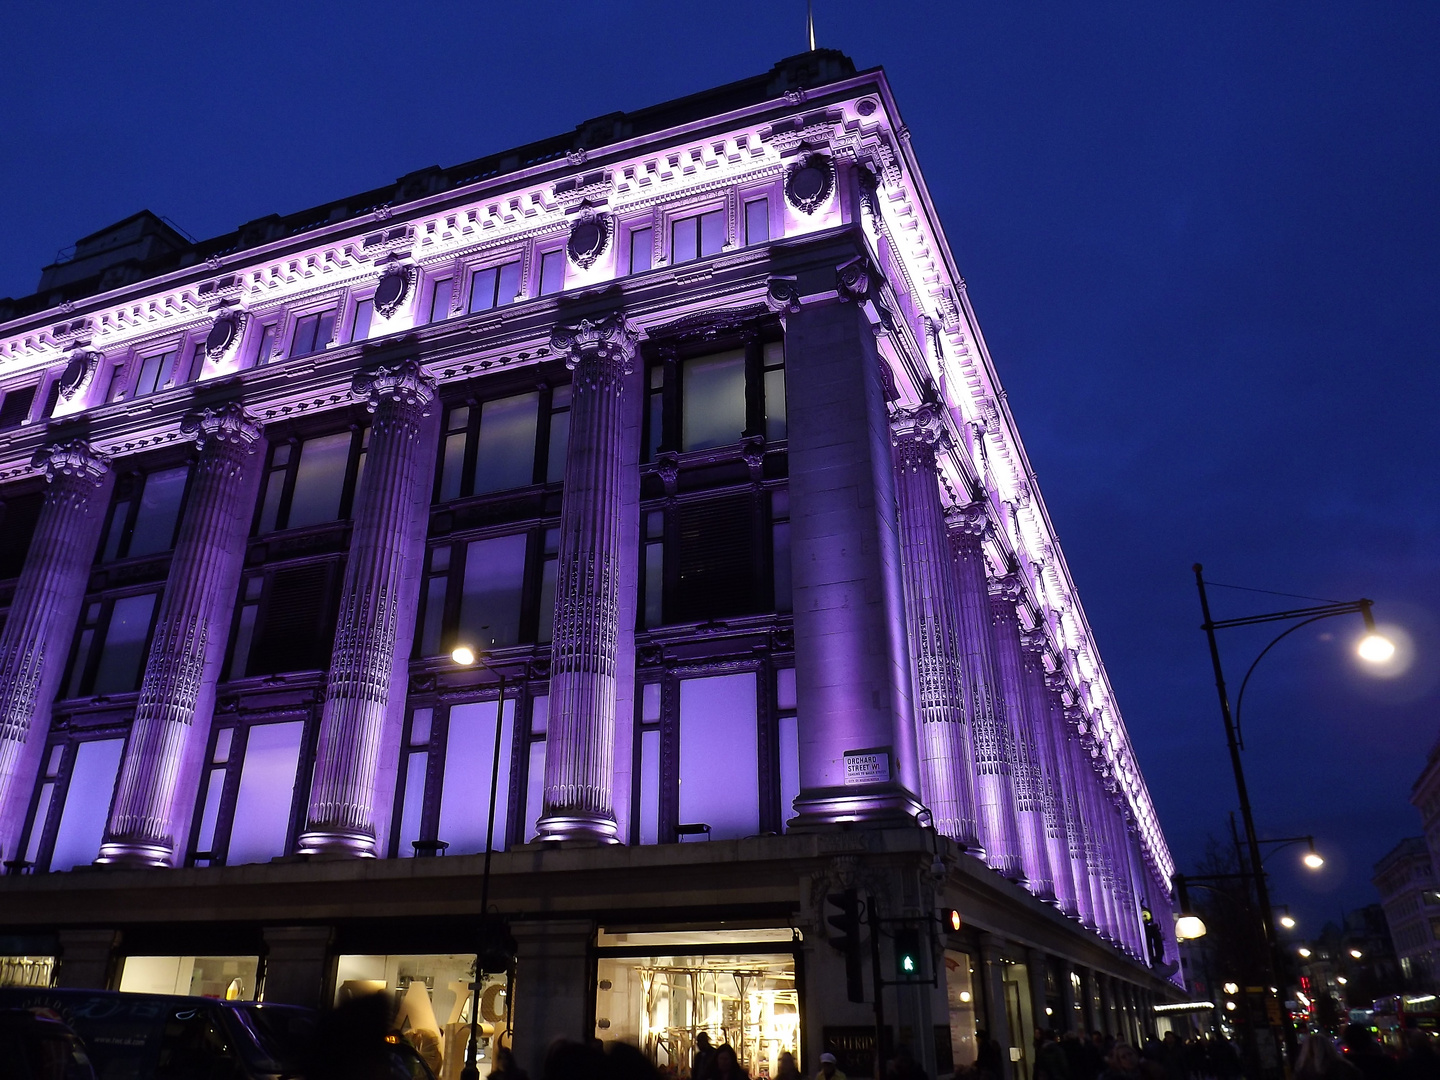 Selfridges - Oxford Street